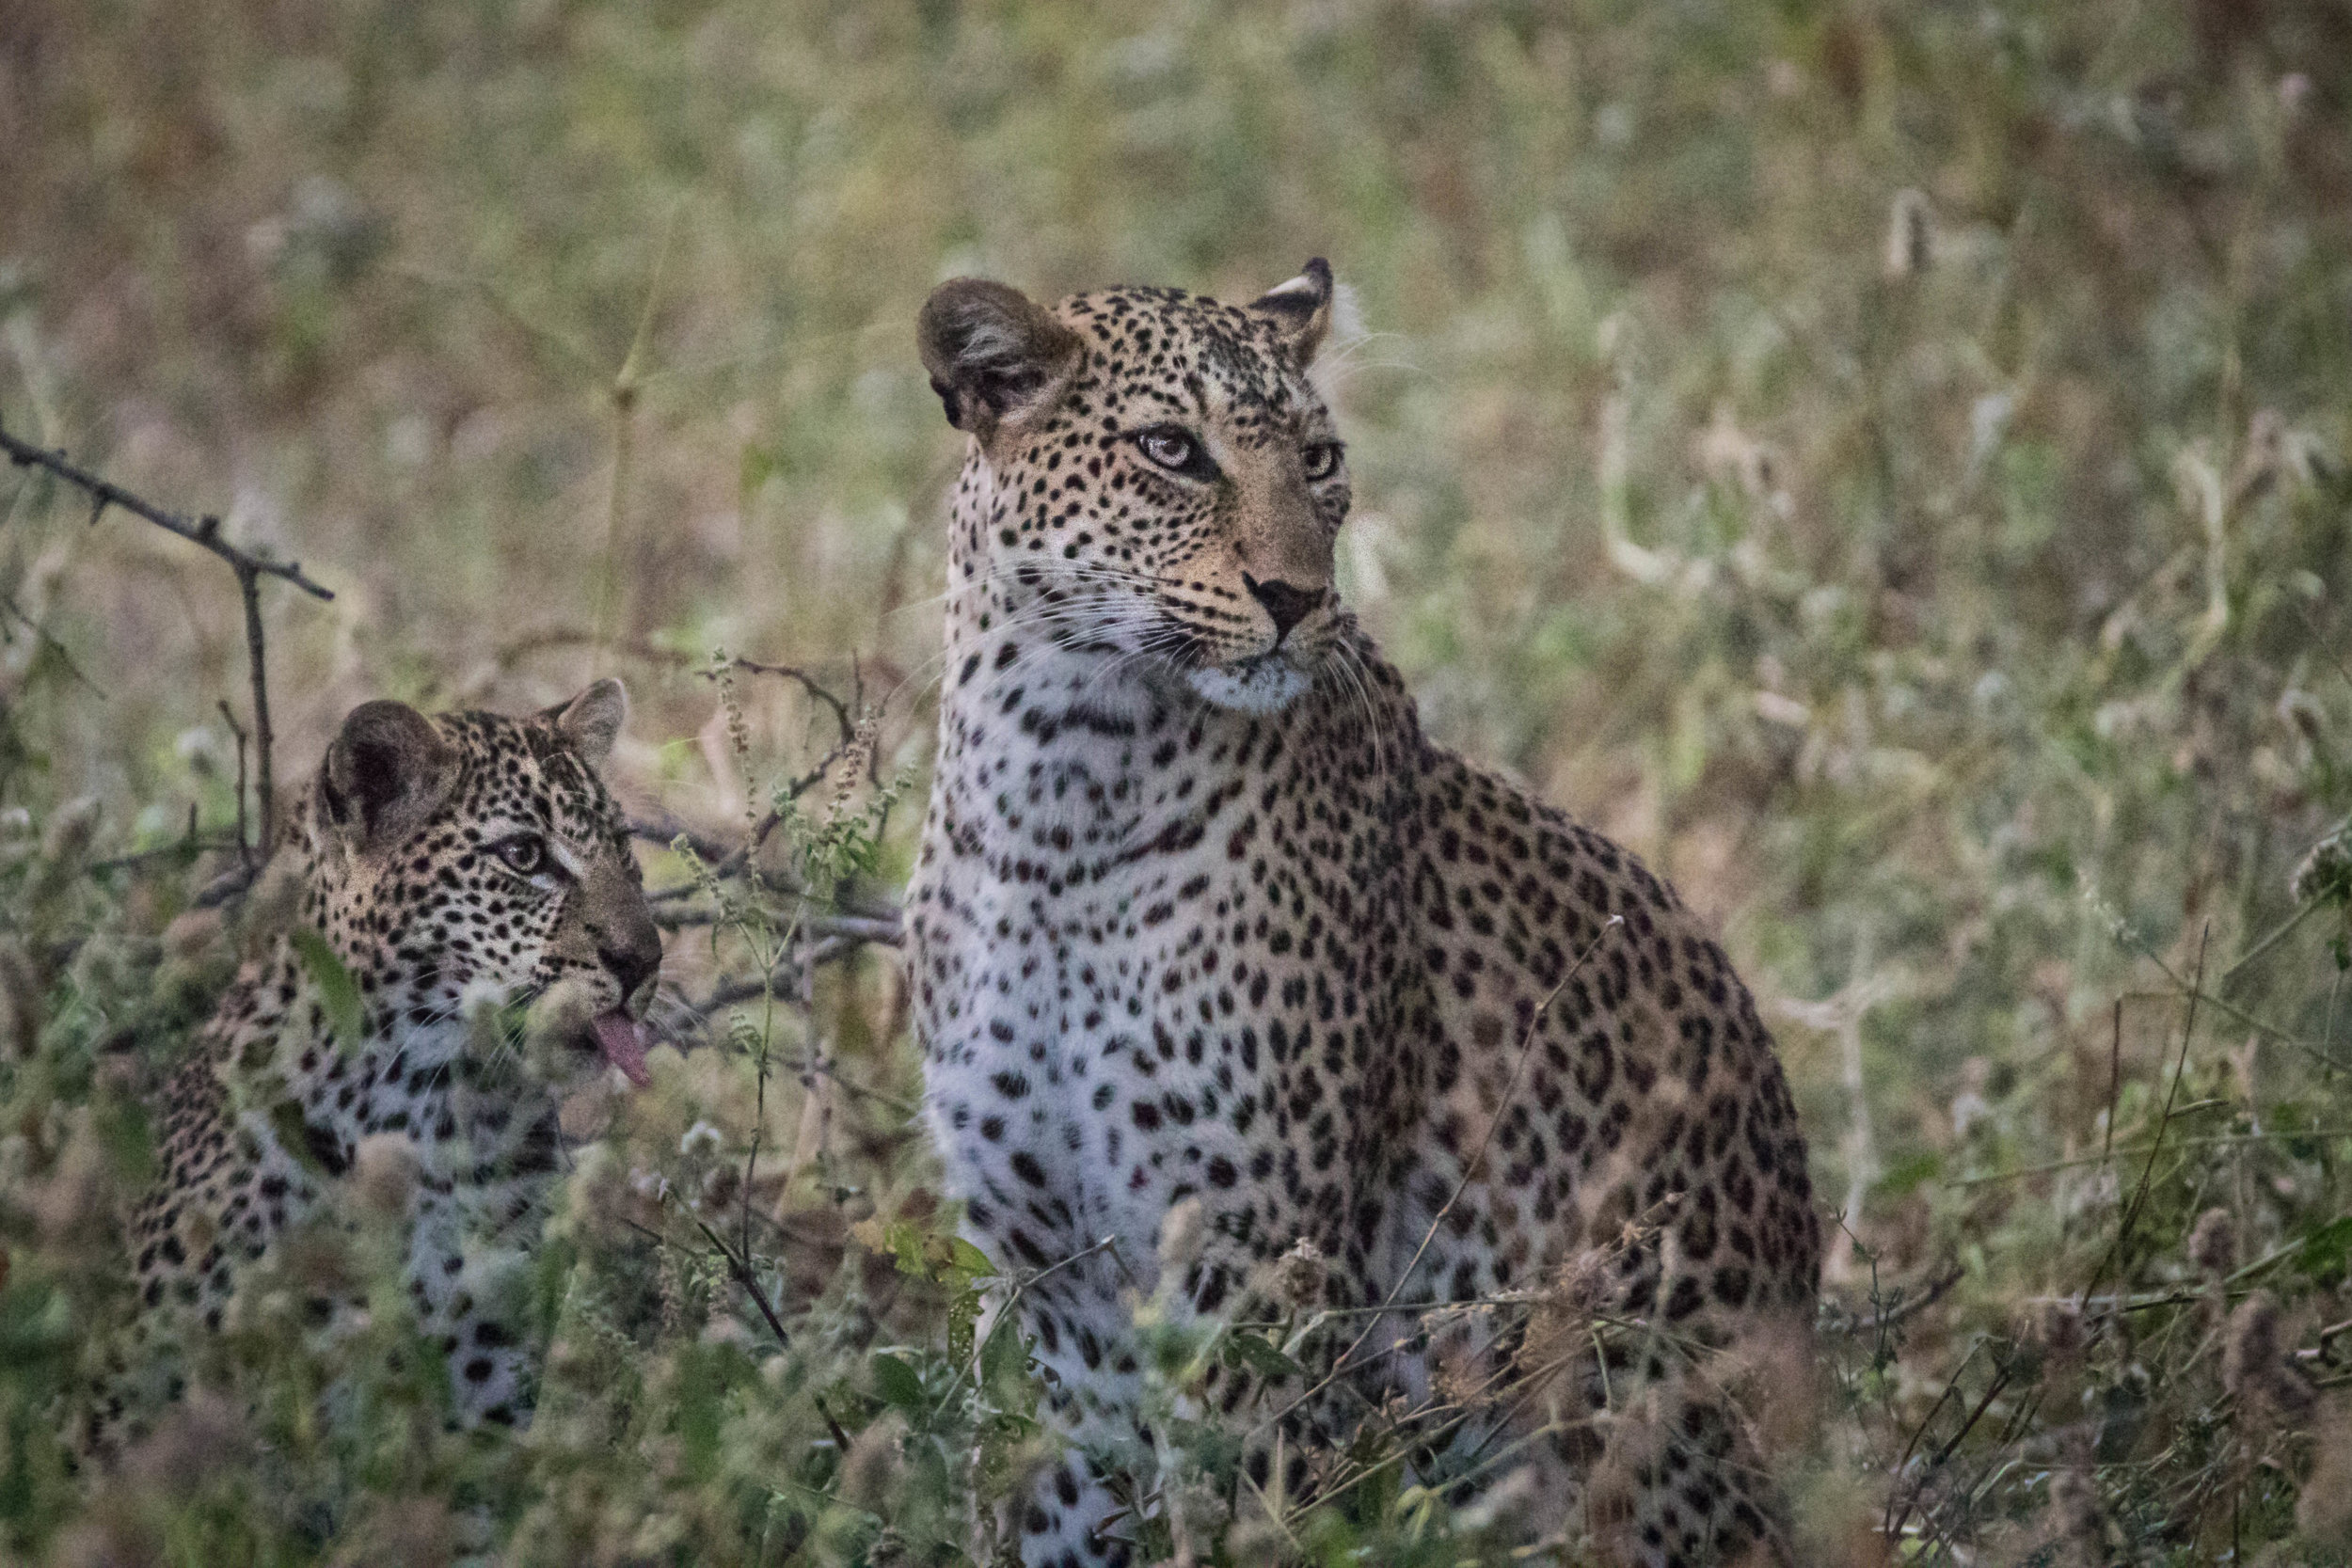 The nearby hyena (out of picture) was of no concern to this mother and her cub!